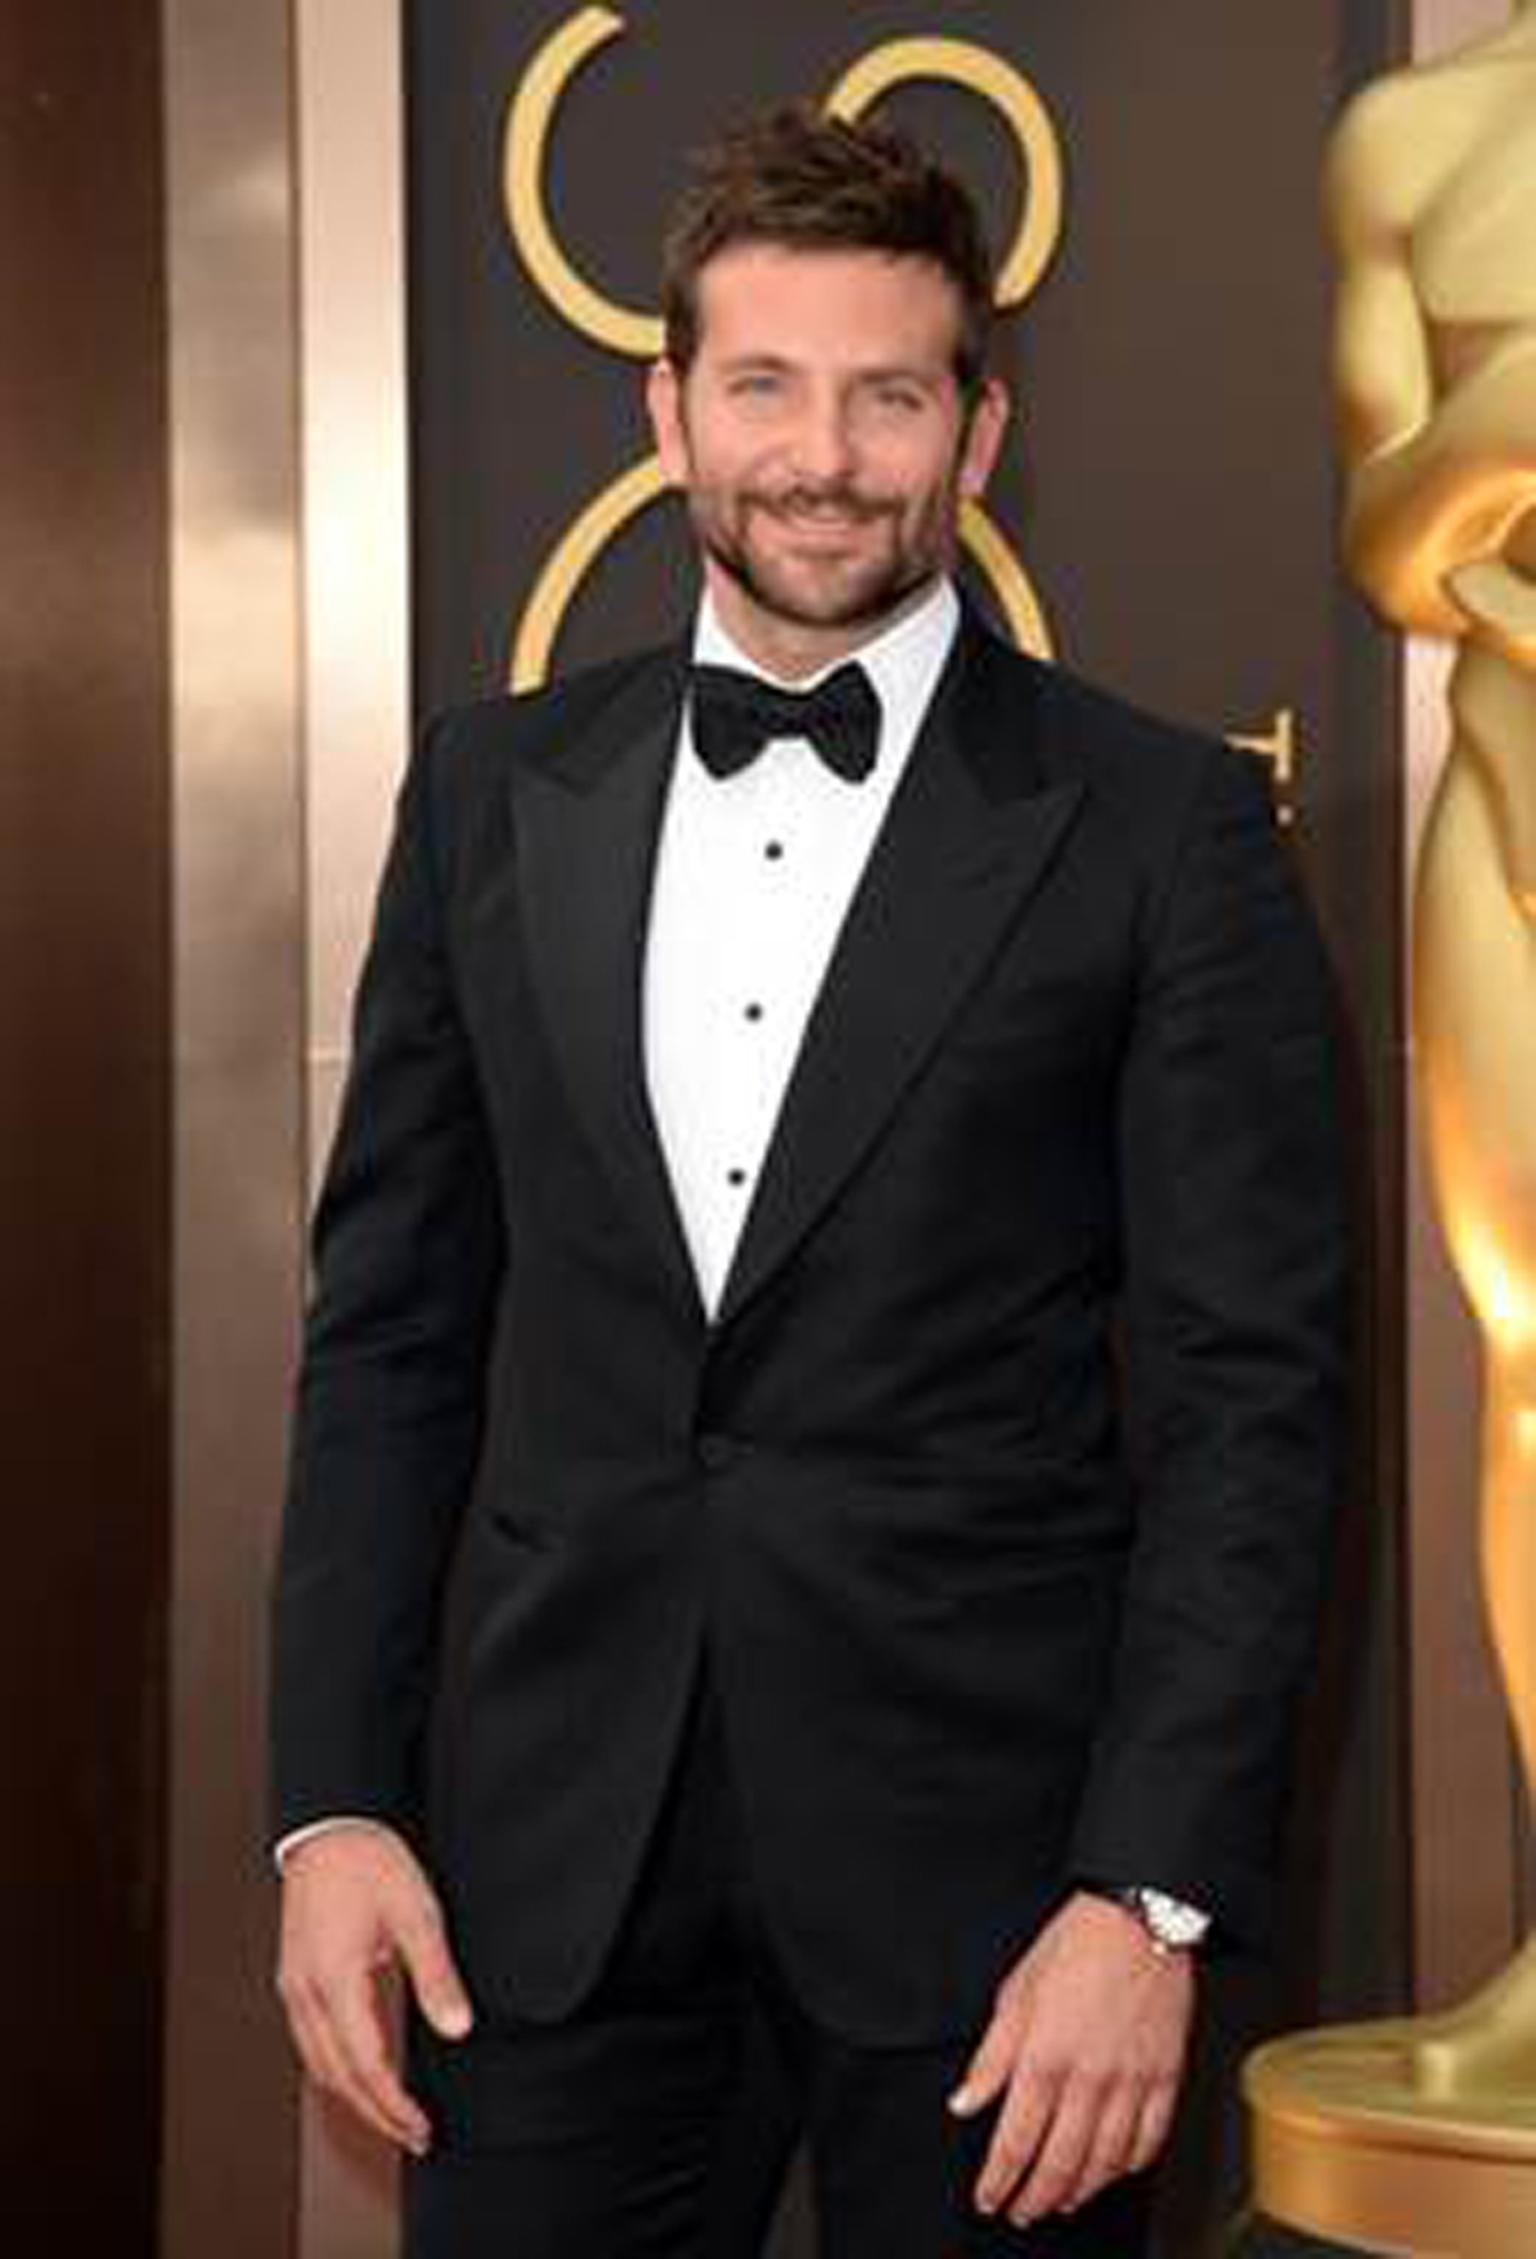 Nominated for Best Actor in a Supporting Role, Bradley Cooper selected Chopard's L.U.C 1937 stainless steel Classic timepiece featuring a white dial and black alligator strap.